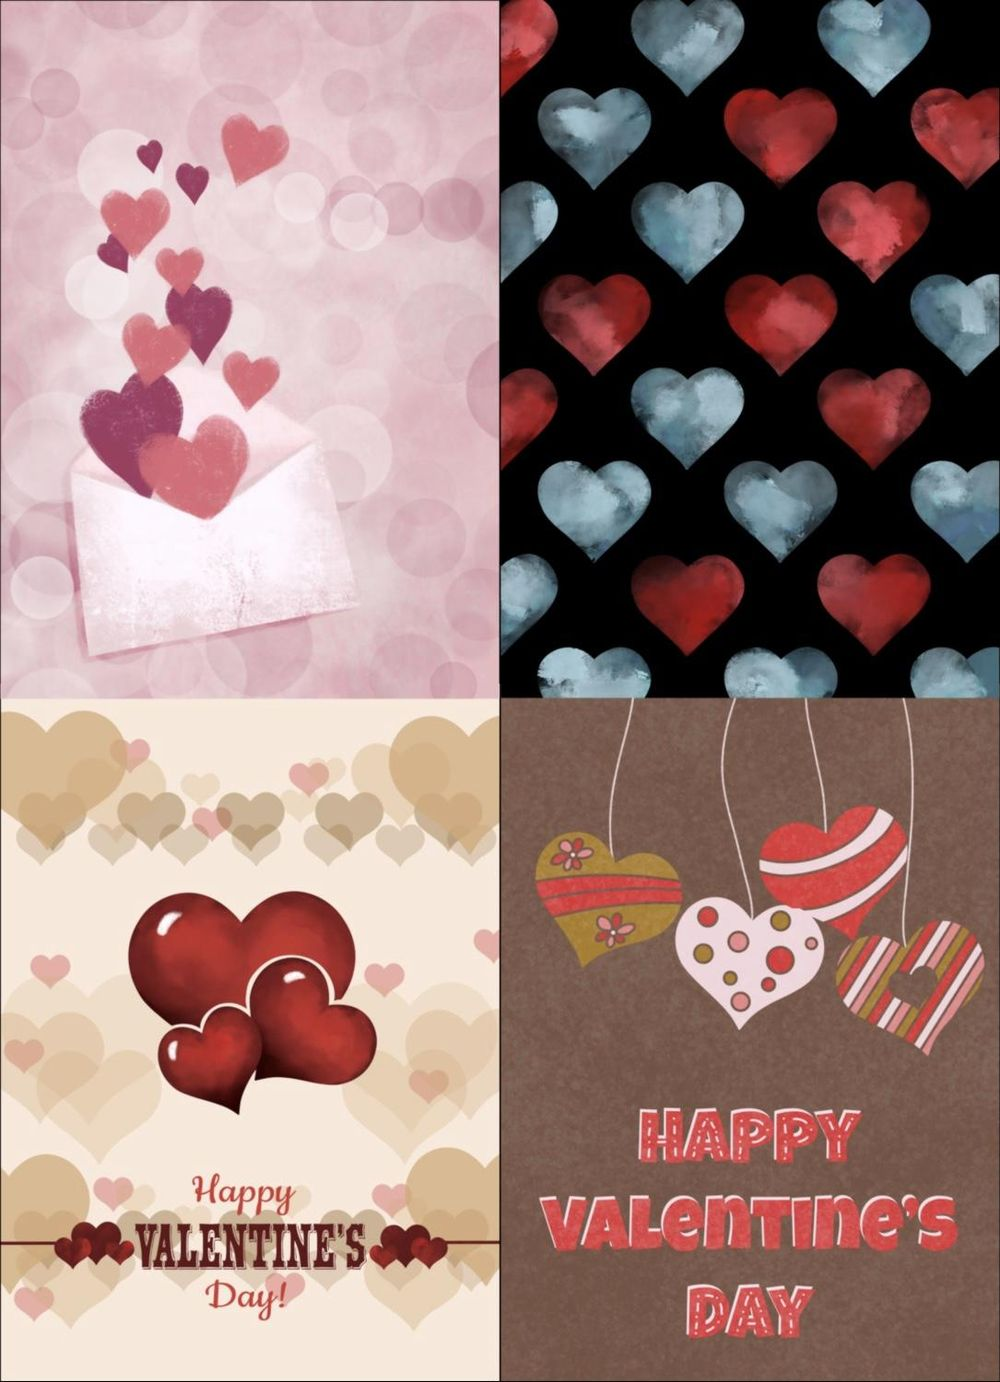 Valentine's Day! - image 1 - student project